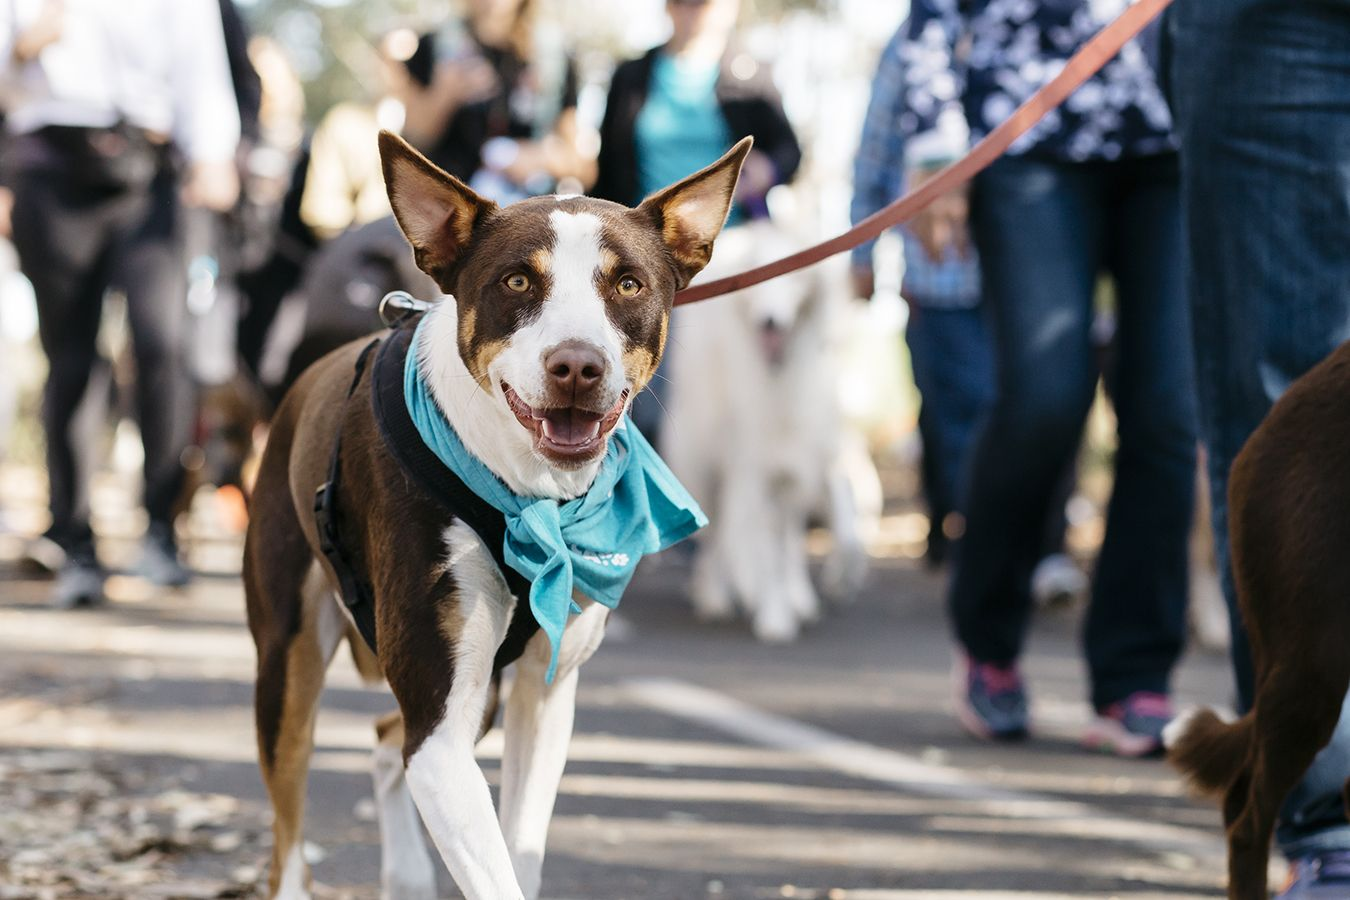 Rspca Million Paws Walk 2019 May 19 Australian Dog Lover Dogs Day Out Fight Animal Cruelty Australia Animals